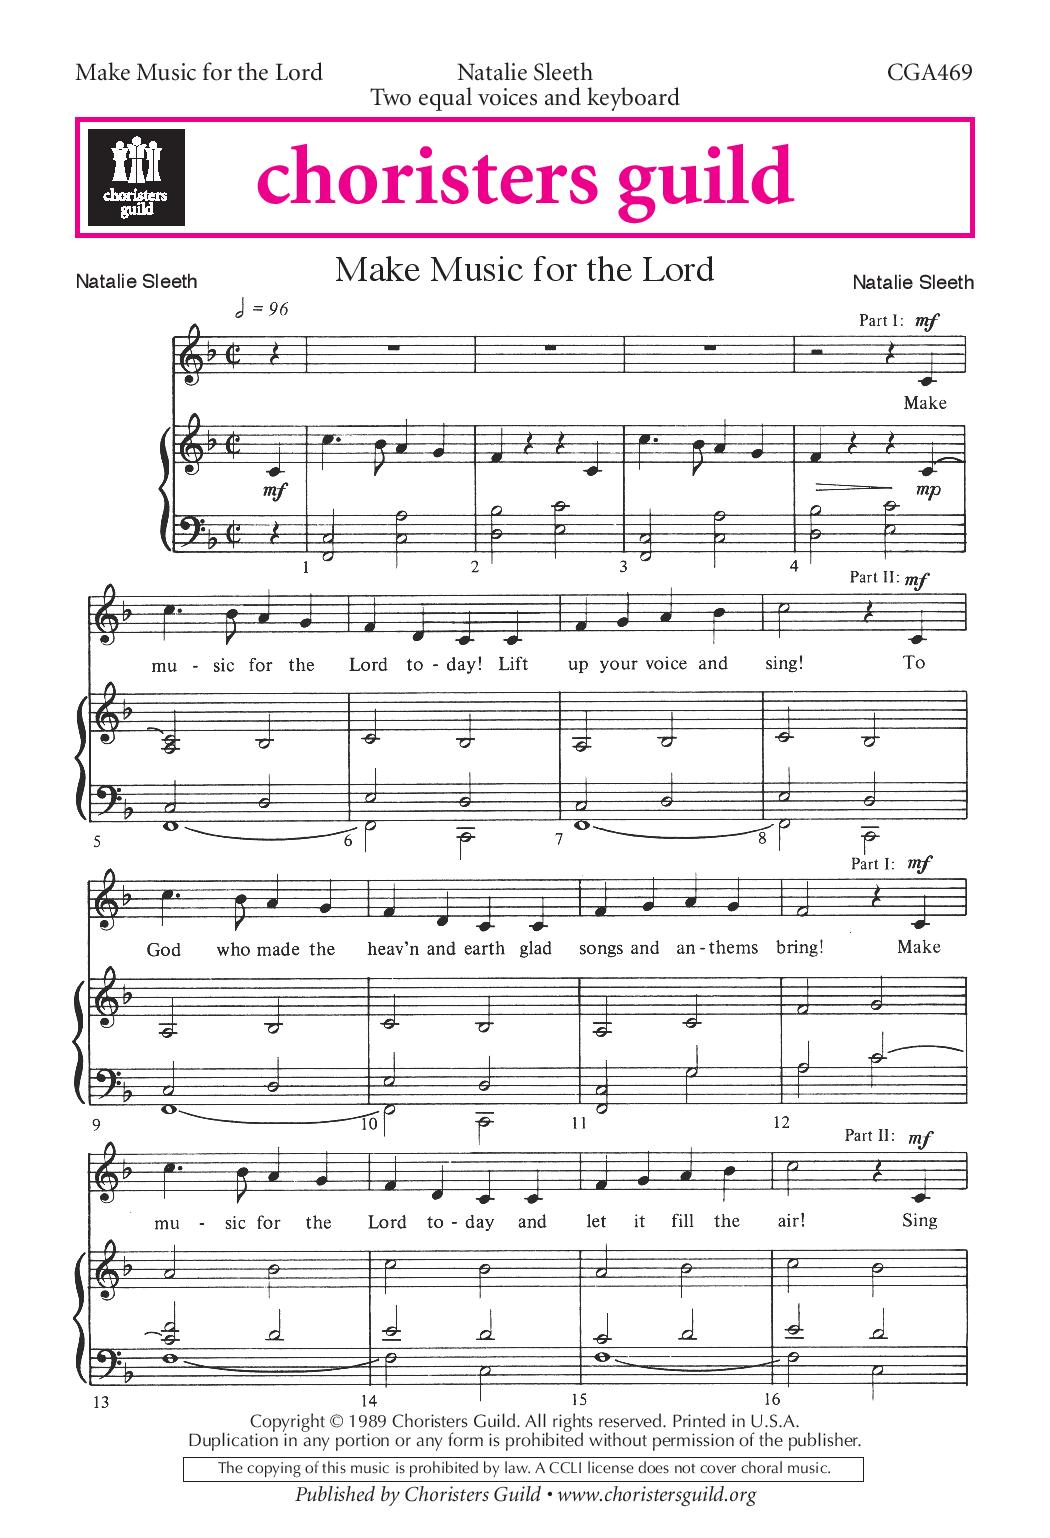 Make Music for the Lord